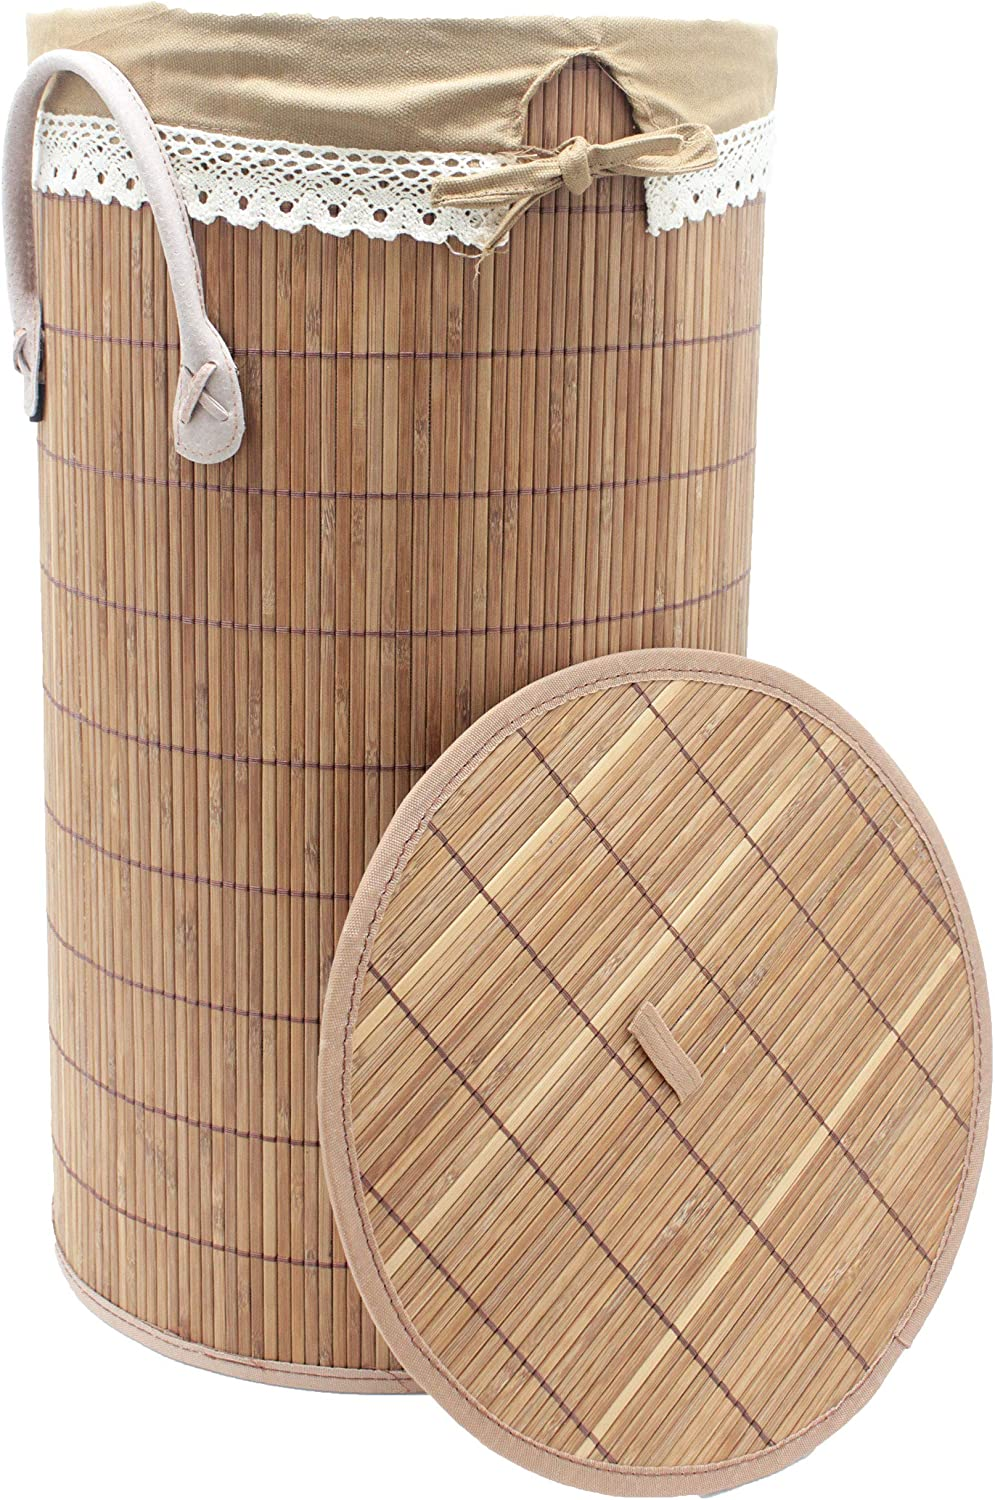 Seta Direct Foldable Bamboo Round Laundry Hamper with Lid and Removable Cloth Liner [Large]